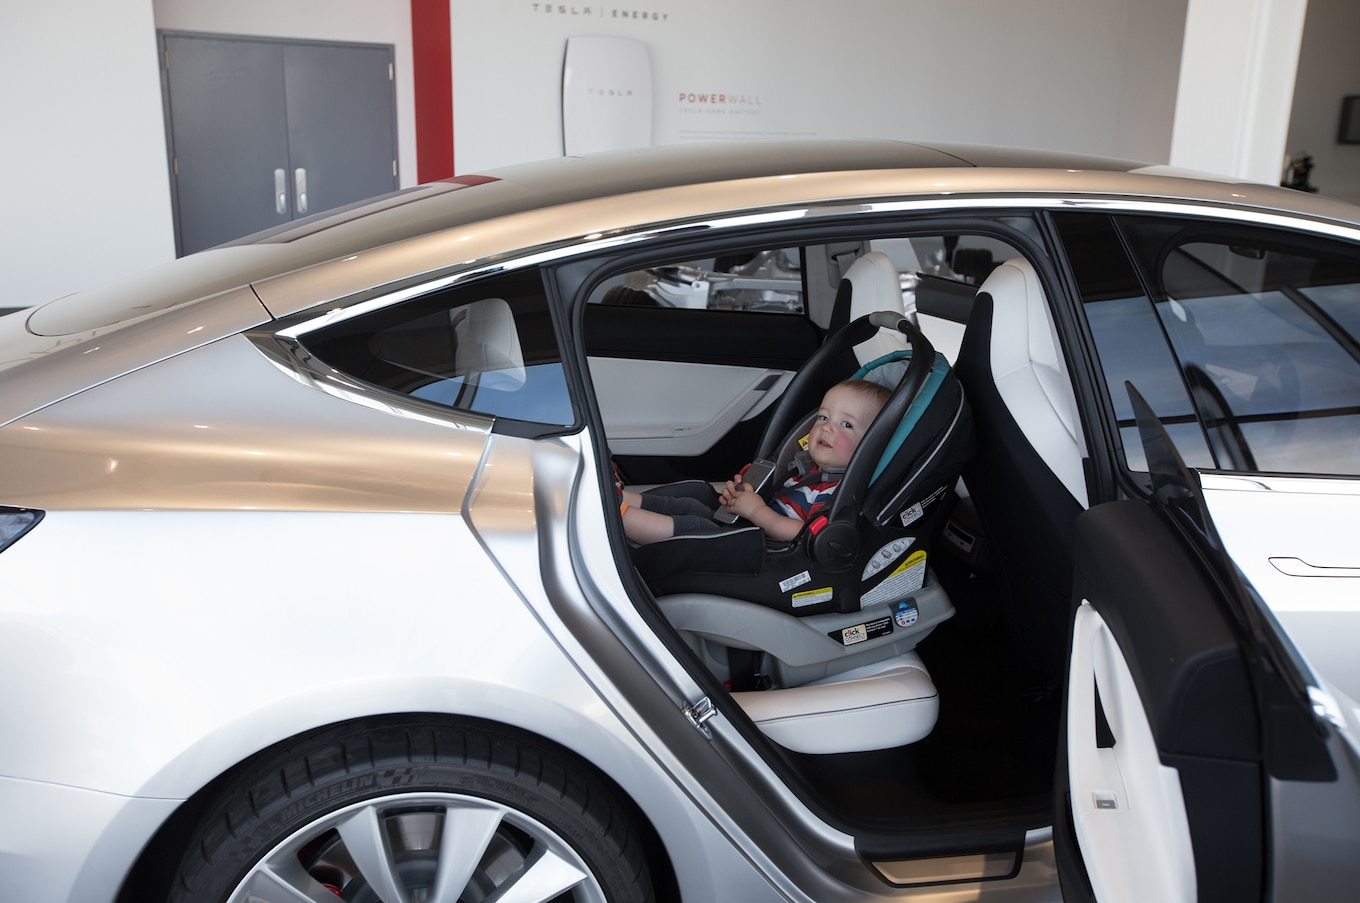 Garage Seat Lens Tesla Model 3 Will It Be A Good Family Car Motortrend